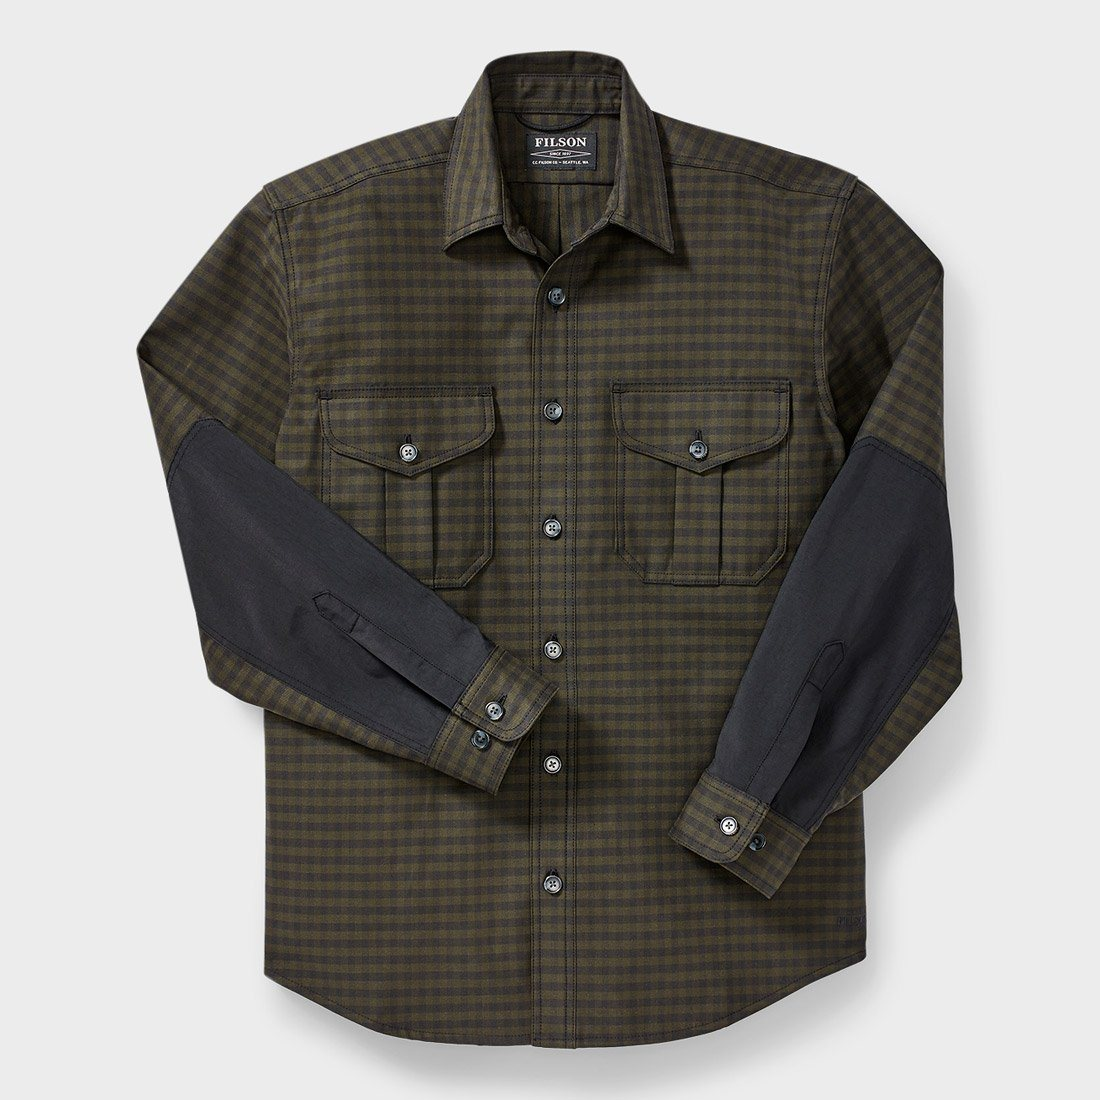 Filson Weather Worker Jac Shirt Black/ Dark Olive